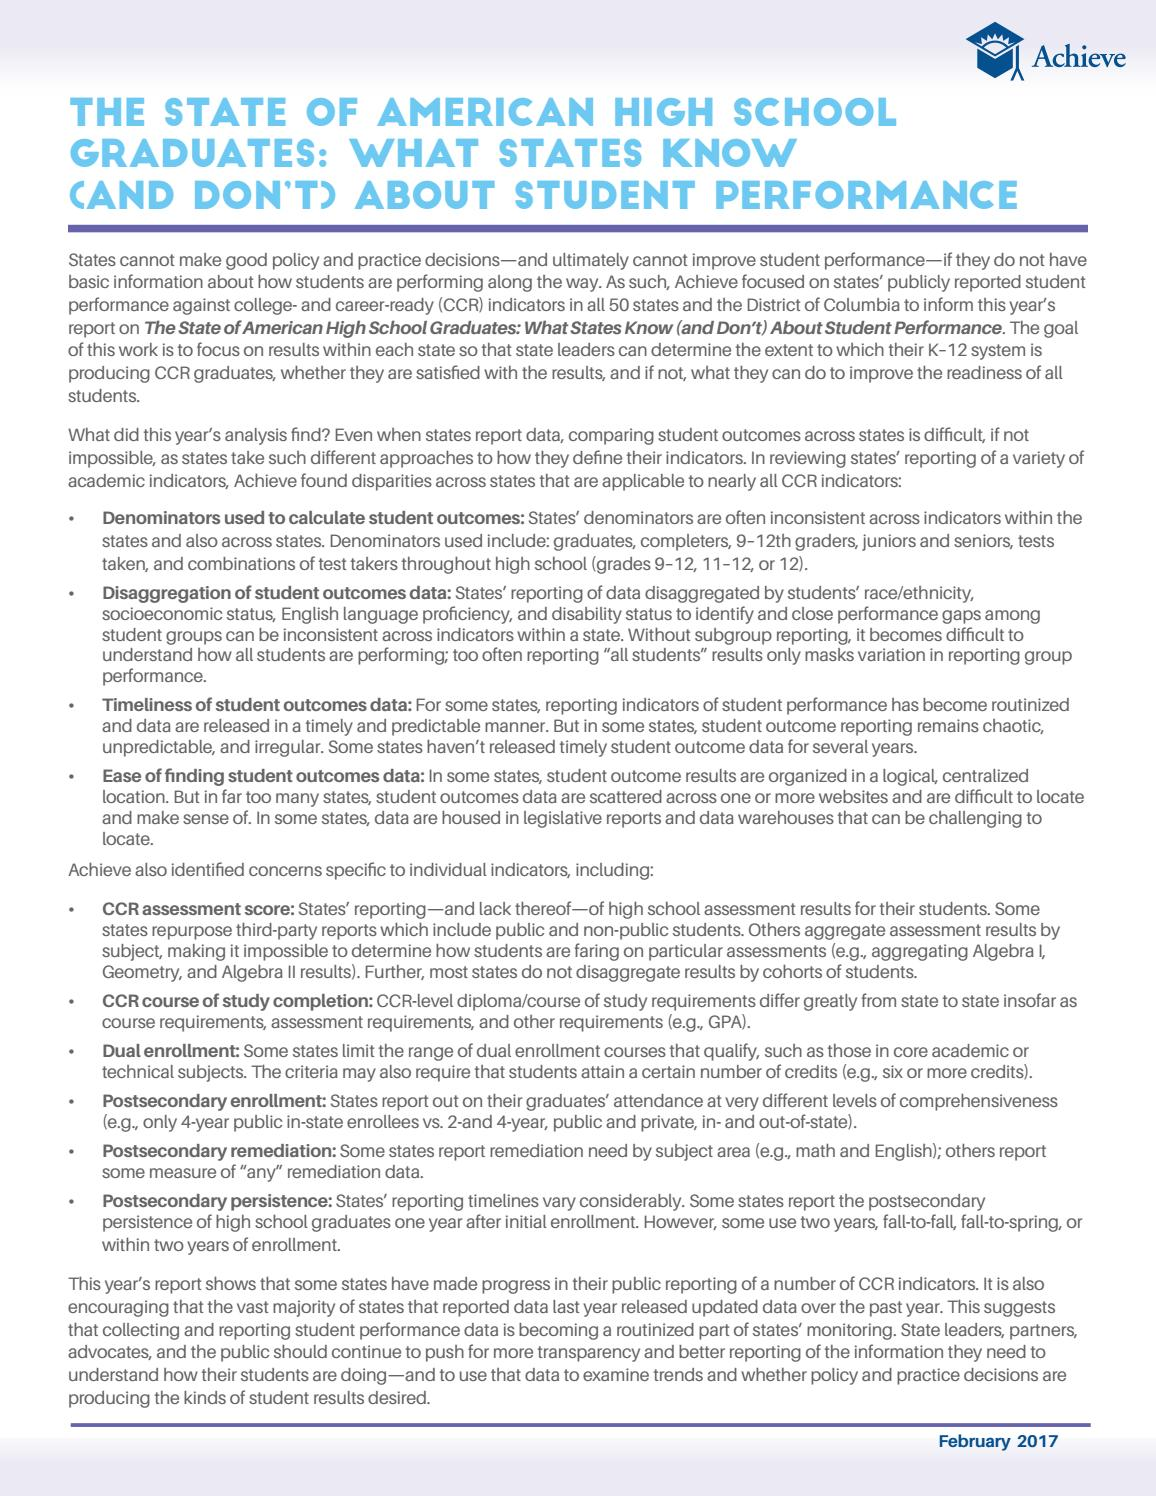 the state of american high school graduates: what states know (and don't)  about student performance